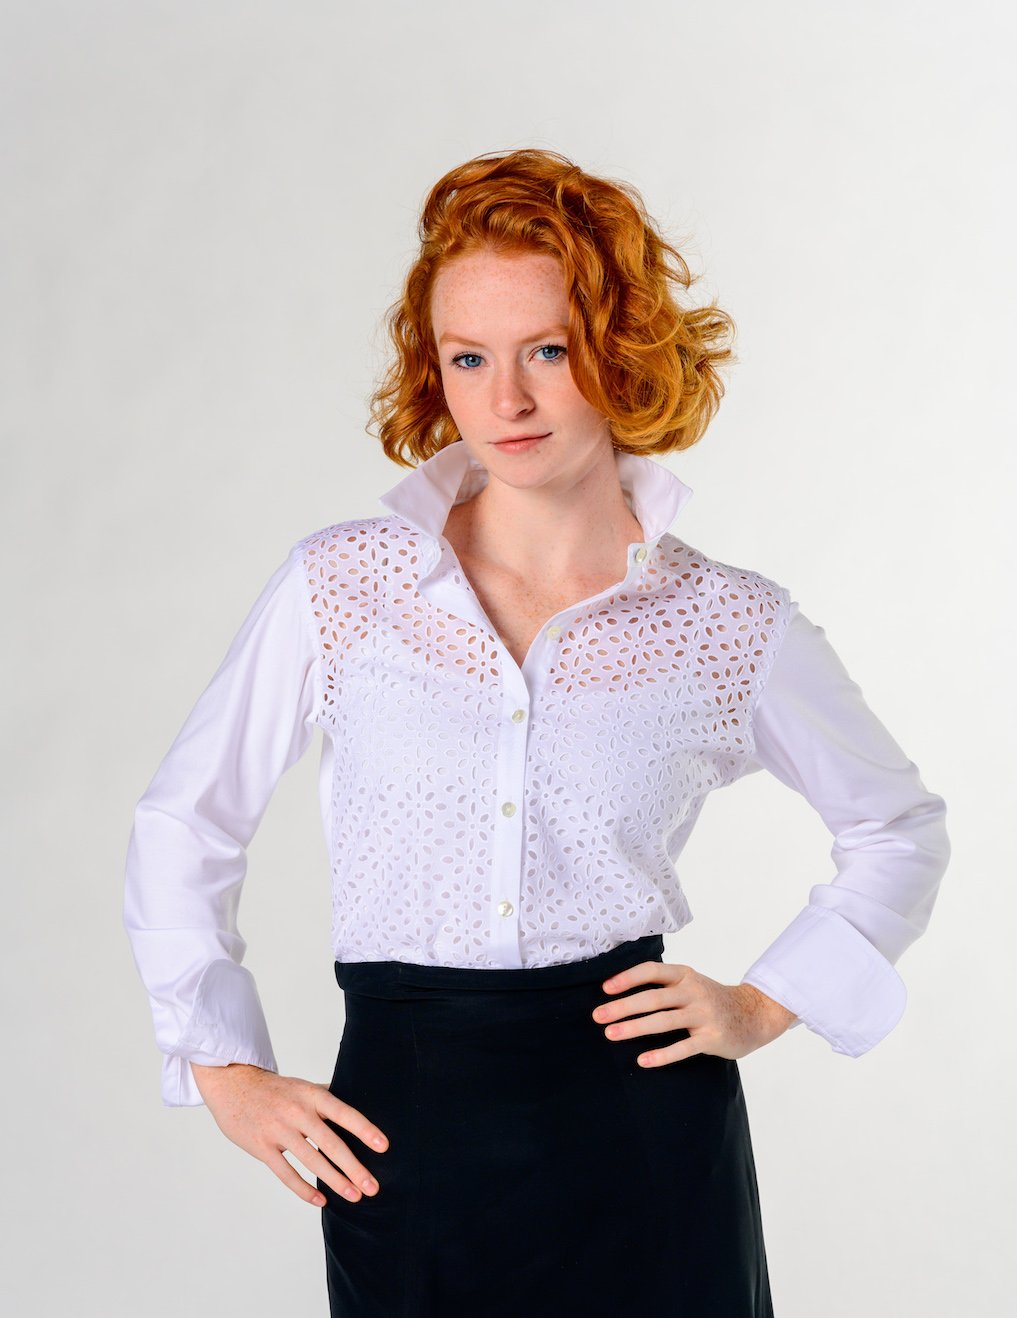 Amaya style. Eyelet cotton with knit back. American Made. Fitted shirt.